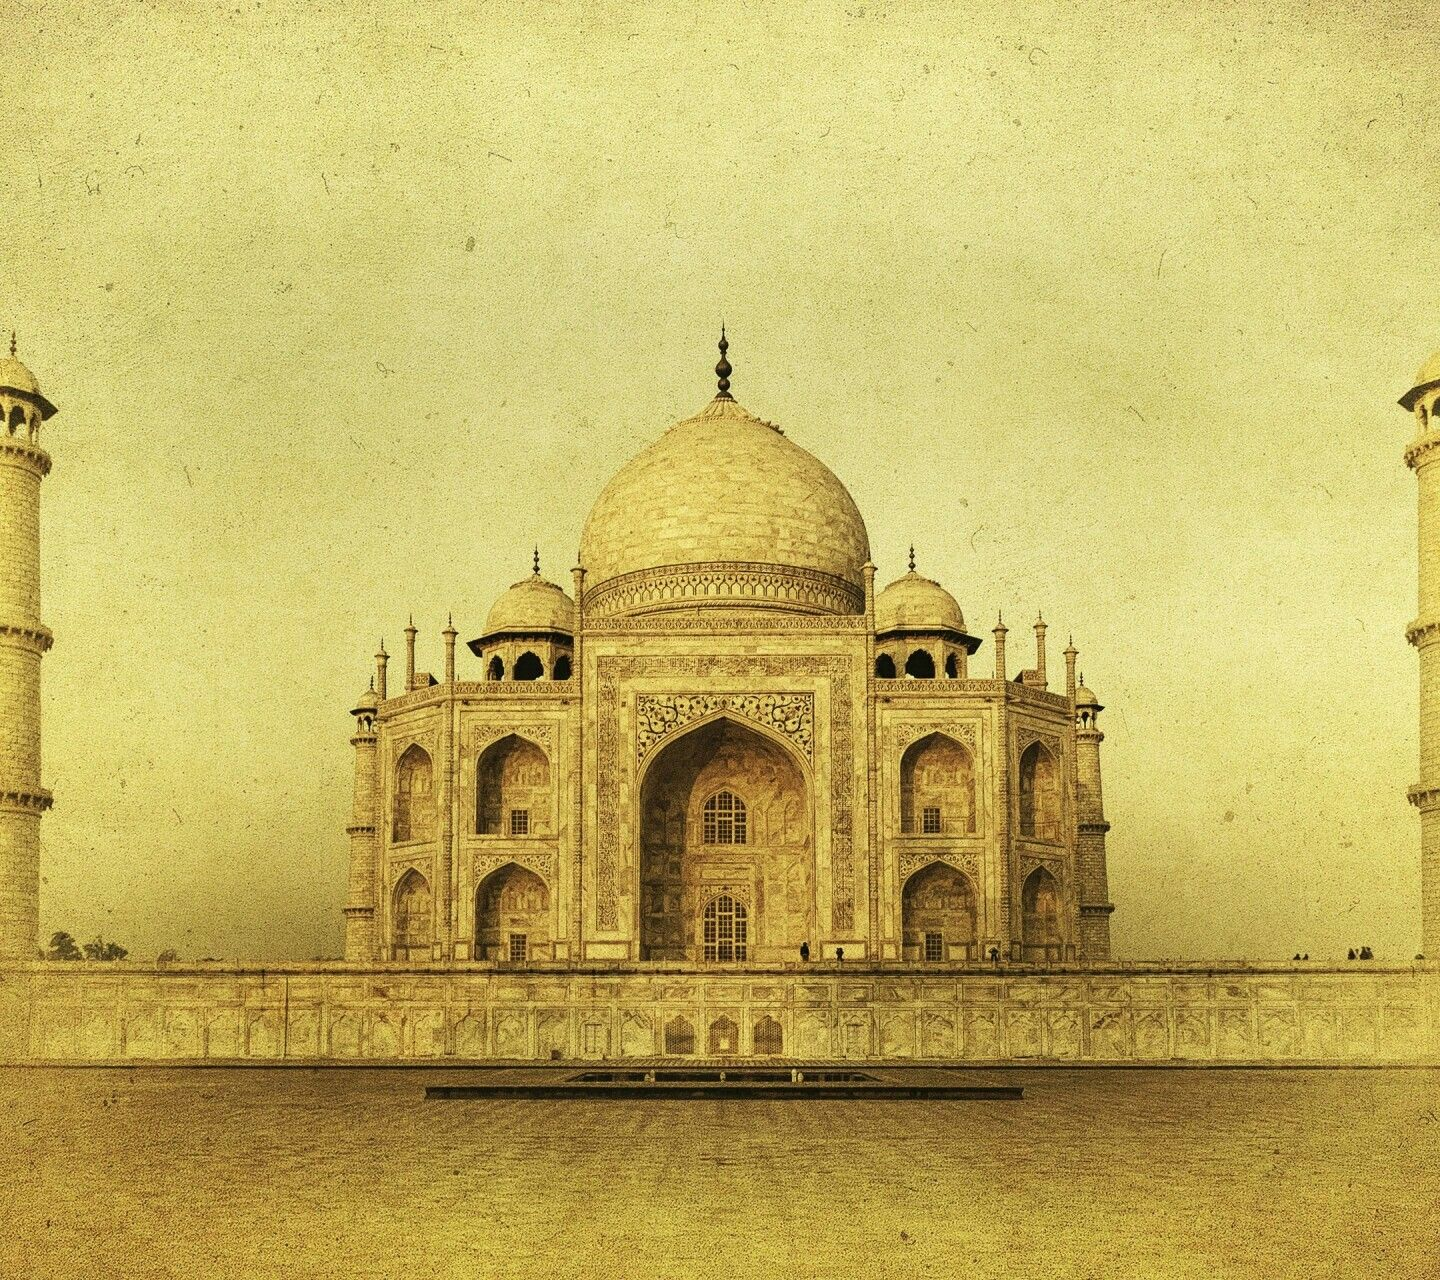 Pin by Shubham Suthar on Wallpapers & Nature | Pinterest | Wallpaper